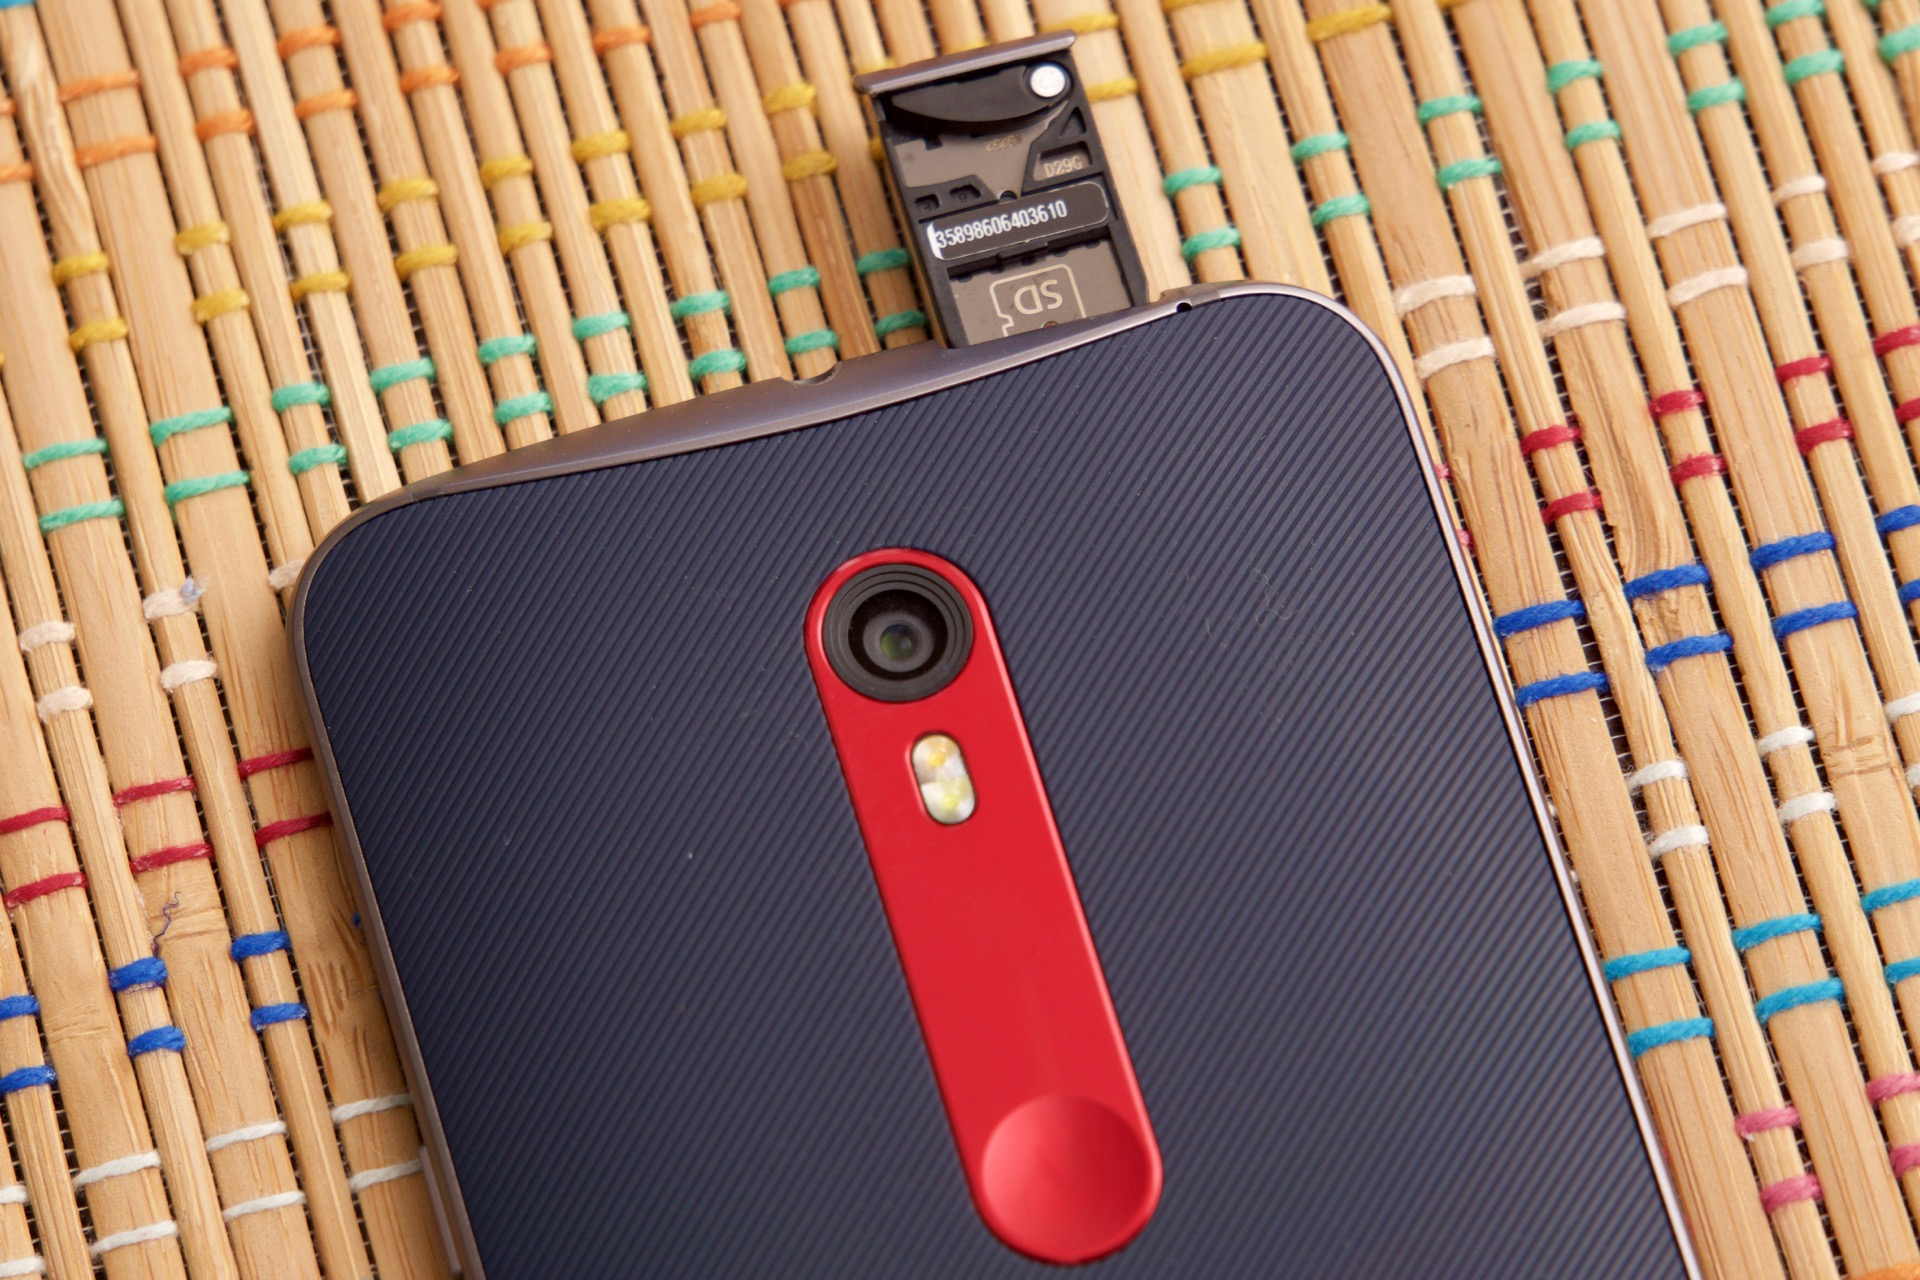 Phone Android Phones Rating androids improved sd card support leads to new performance enlarge android phones with slots are the primary driver behind app rating fo